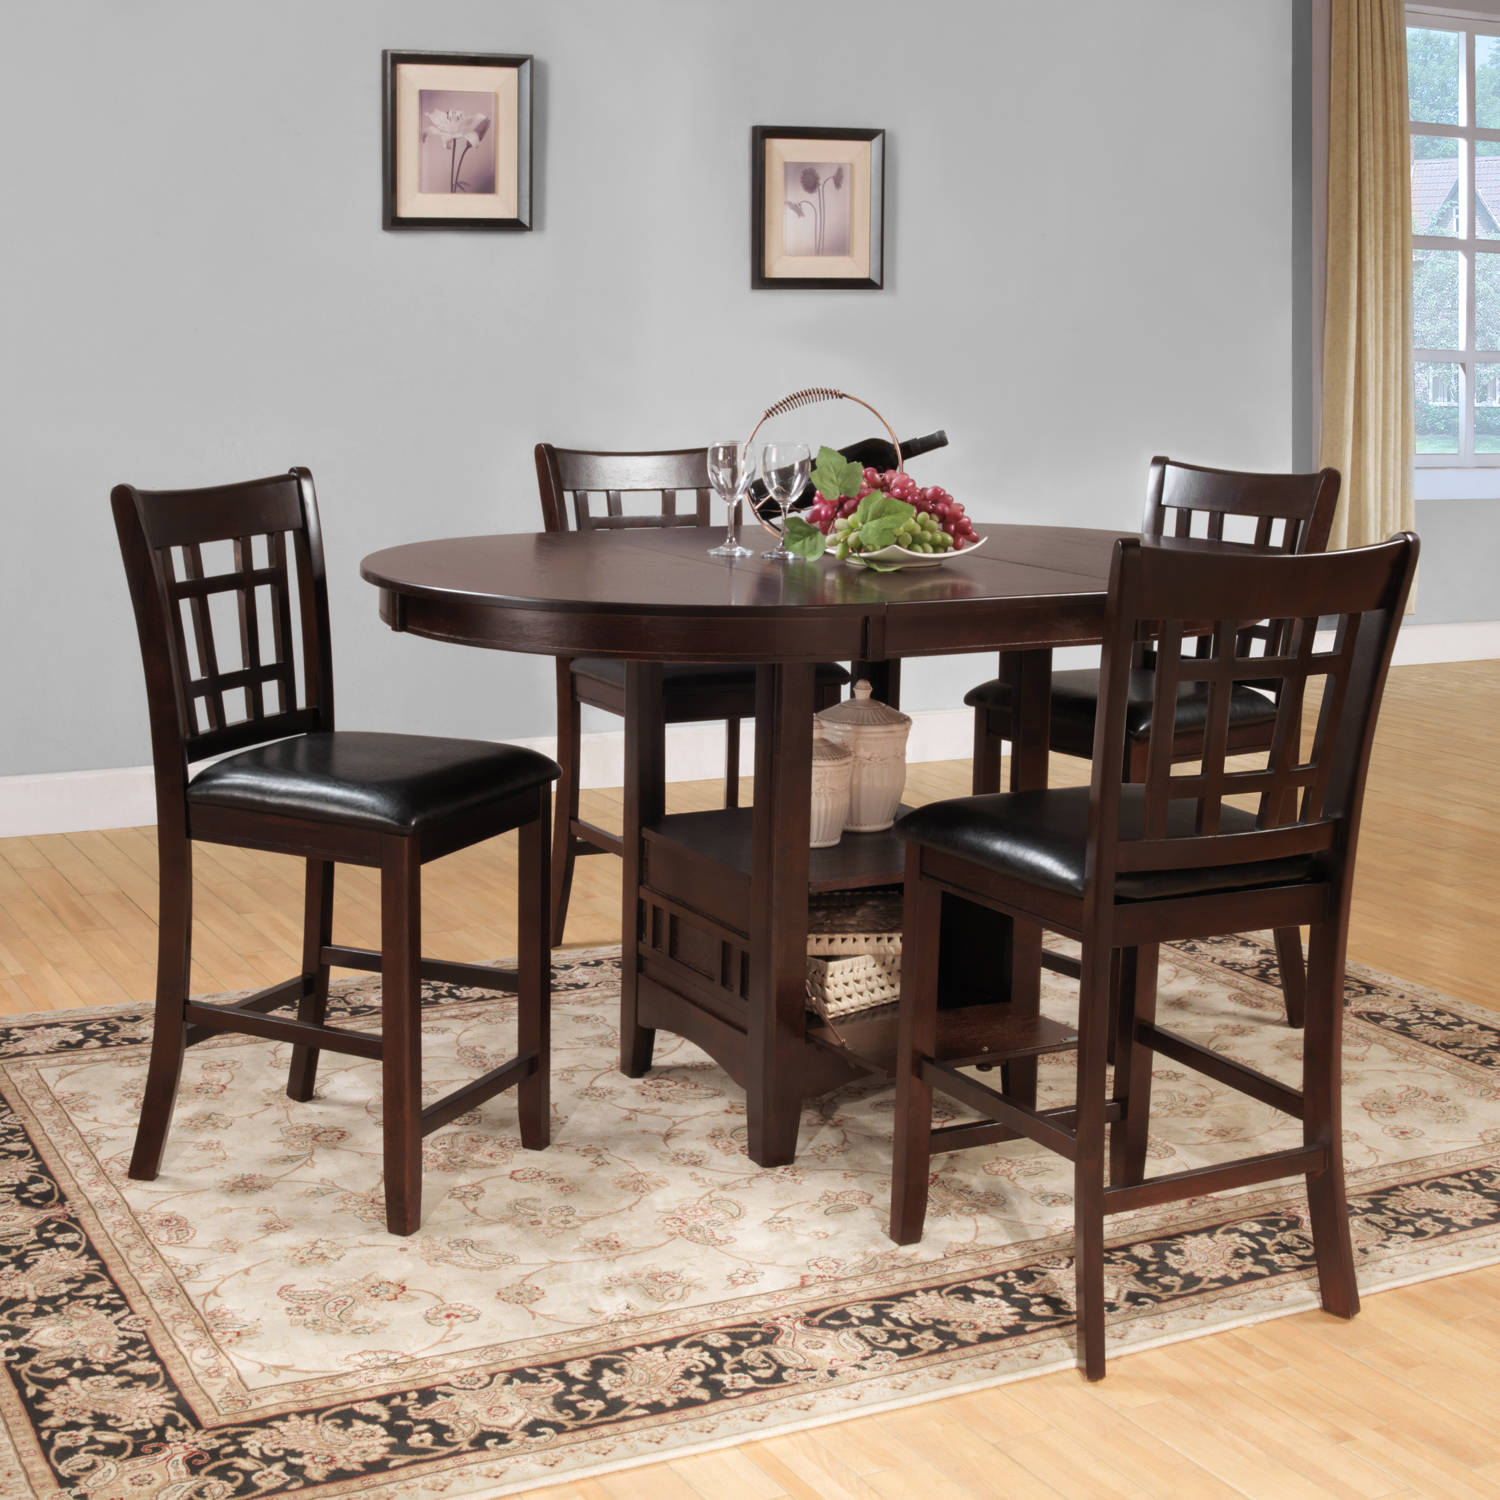 Weston Home Junipero 5 Pc Counter Height Dining Set, Dark Cherry